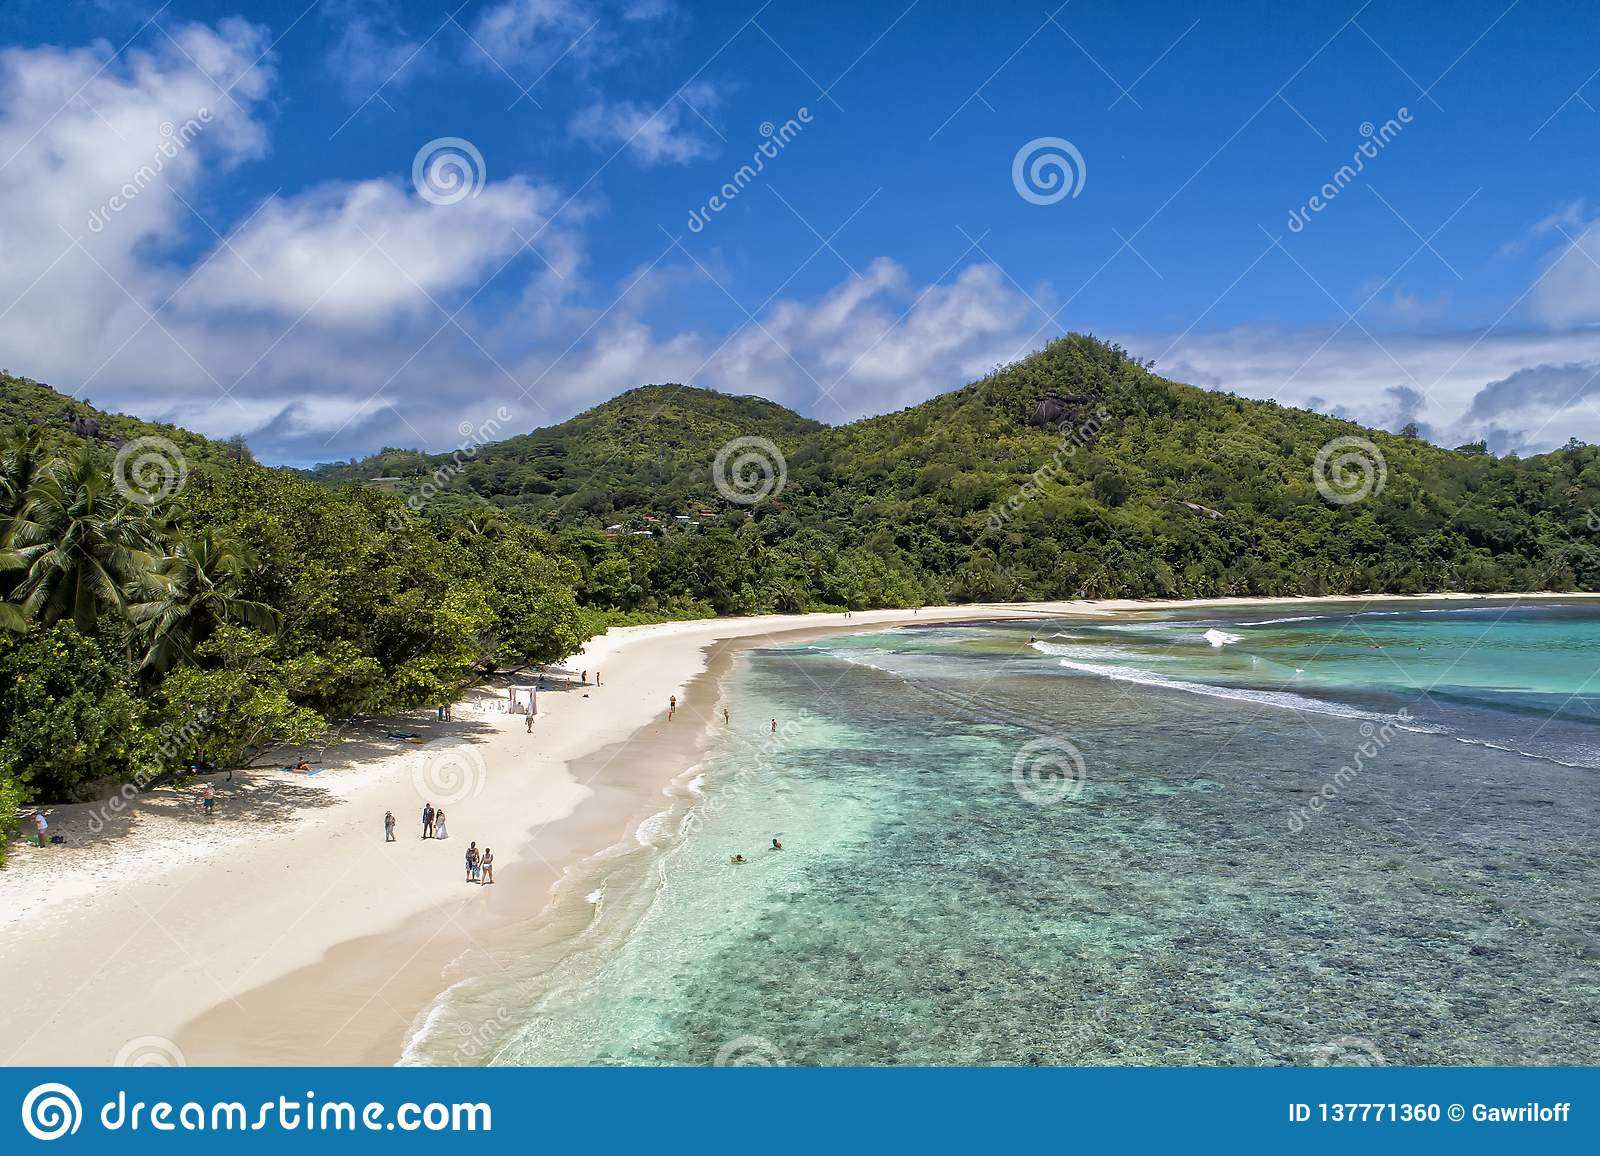 Tropical beach with sea and palm taken from drone. Beach and sea photo. Romantic beach aerial view